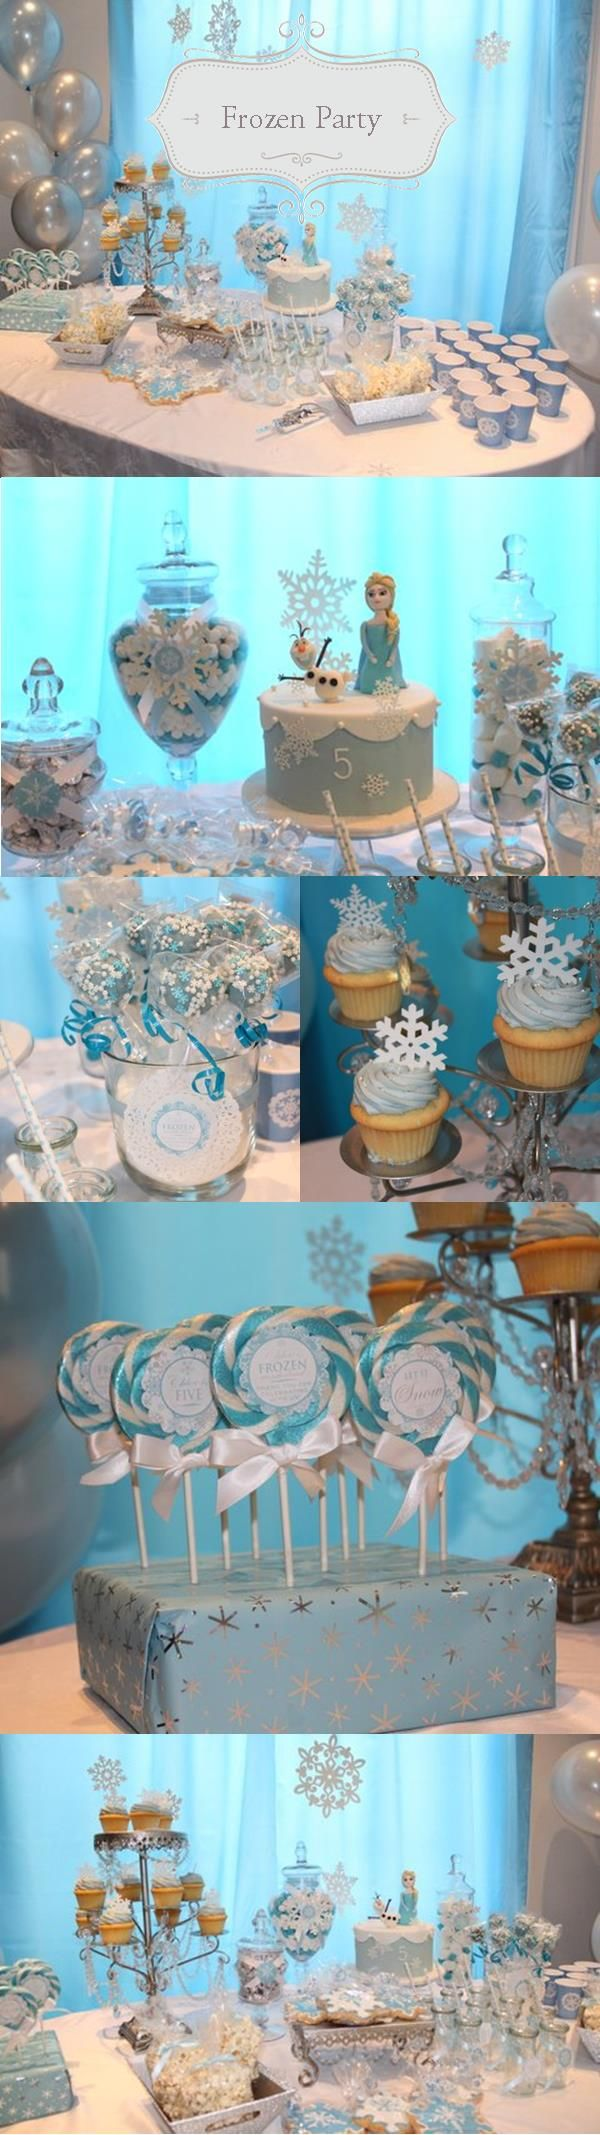 Frozen themed party styled by Enchanted Party! http://enchantedparty.com/